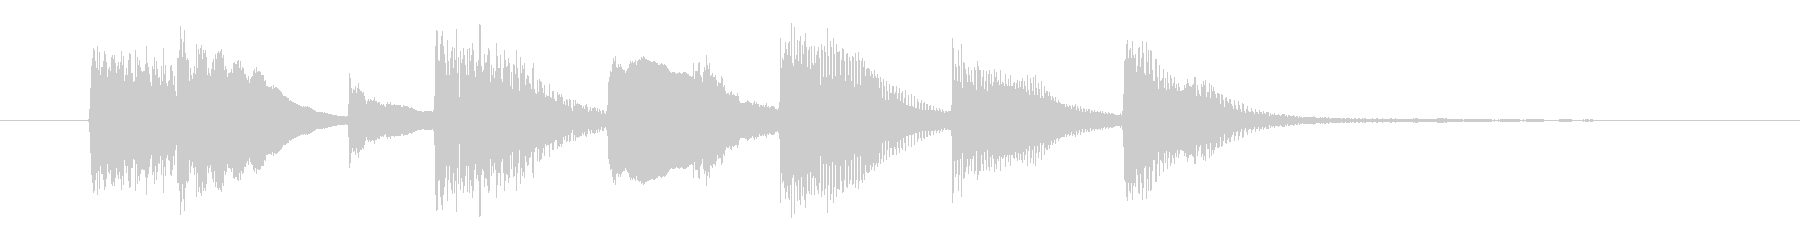 Simple and bright piano jingle's unreproduced waveform